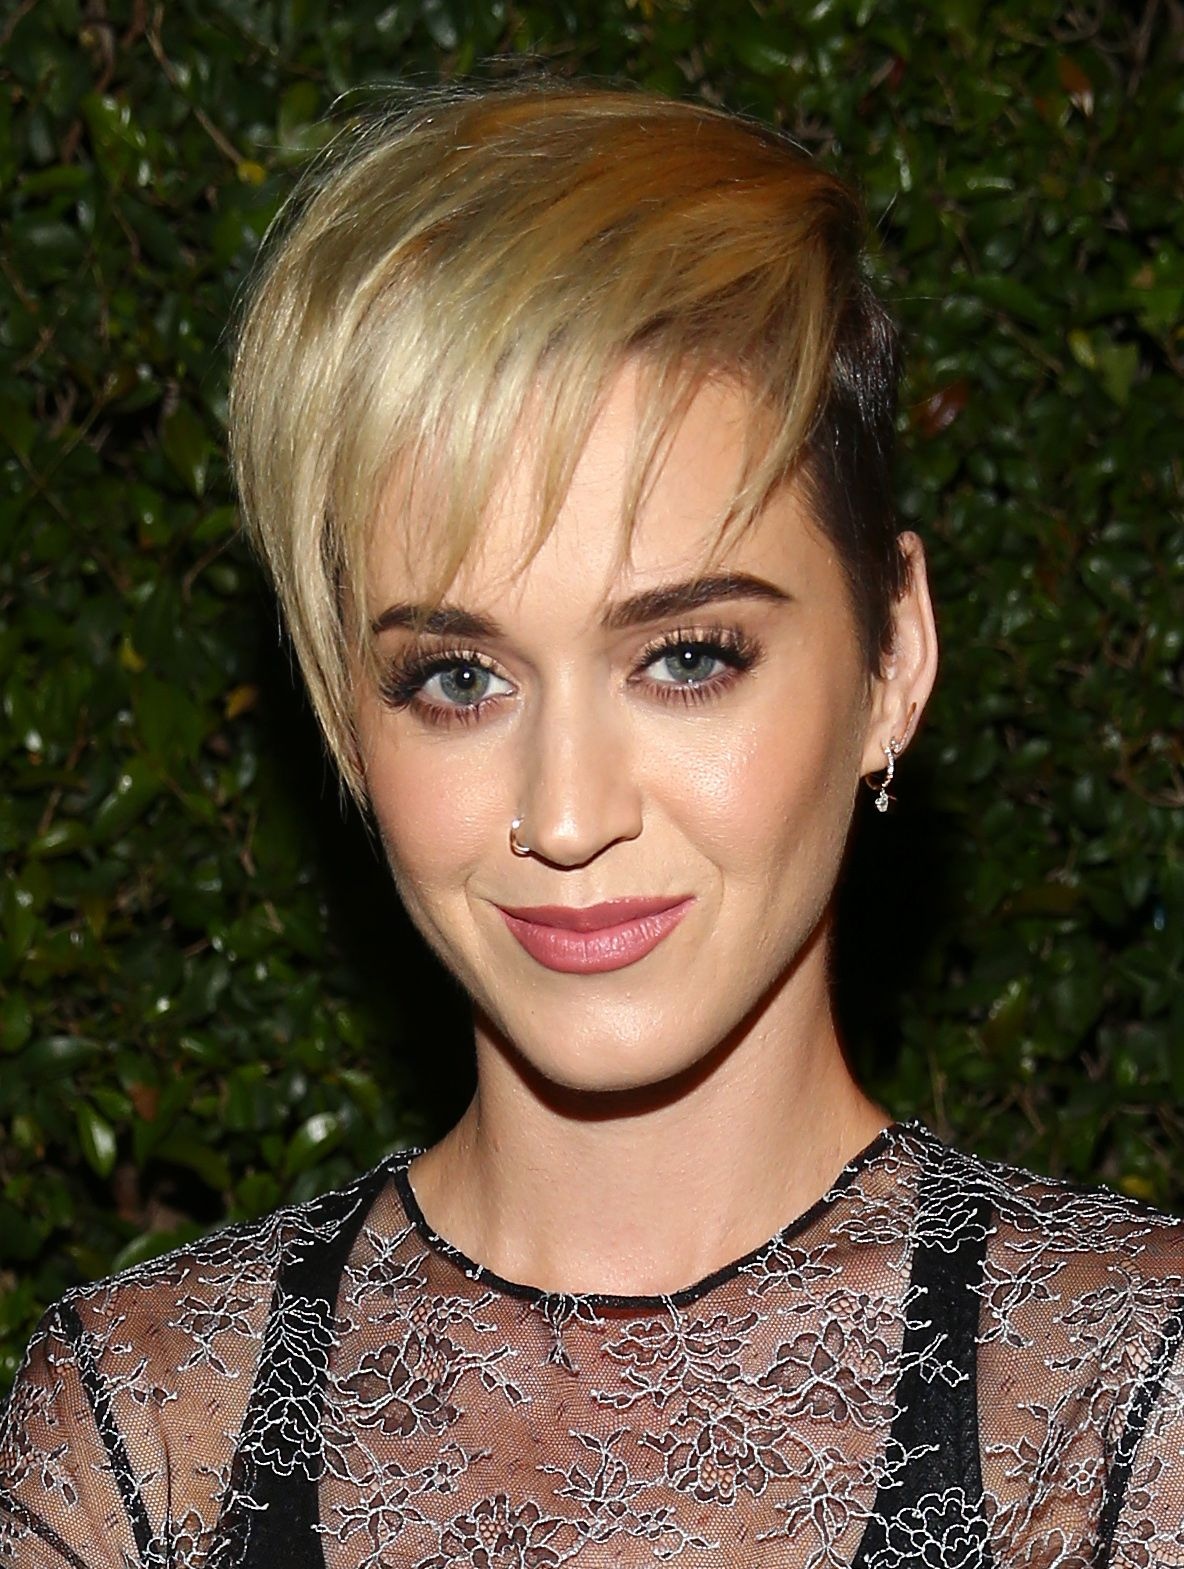 Katy Perry con corte pixie y flequillo